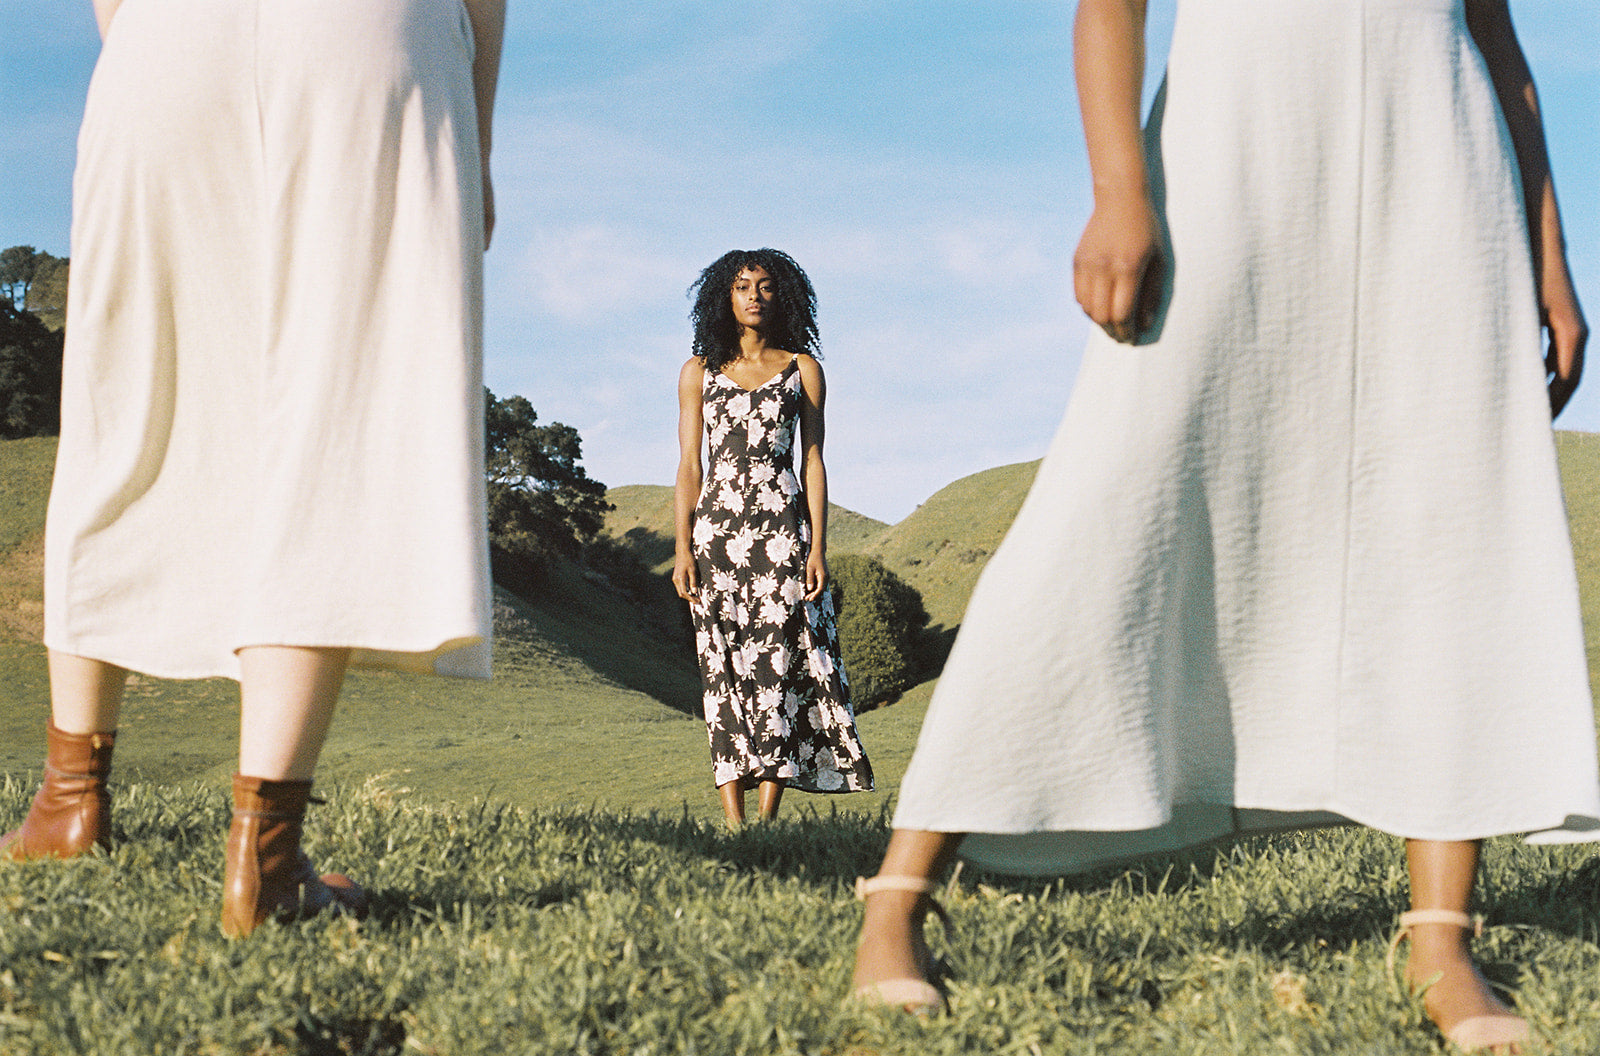 field day meadow dresses long dress on a hill will pockets